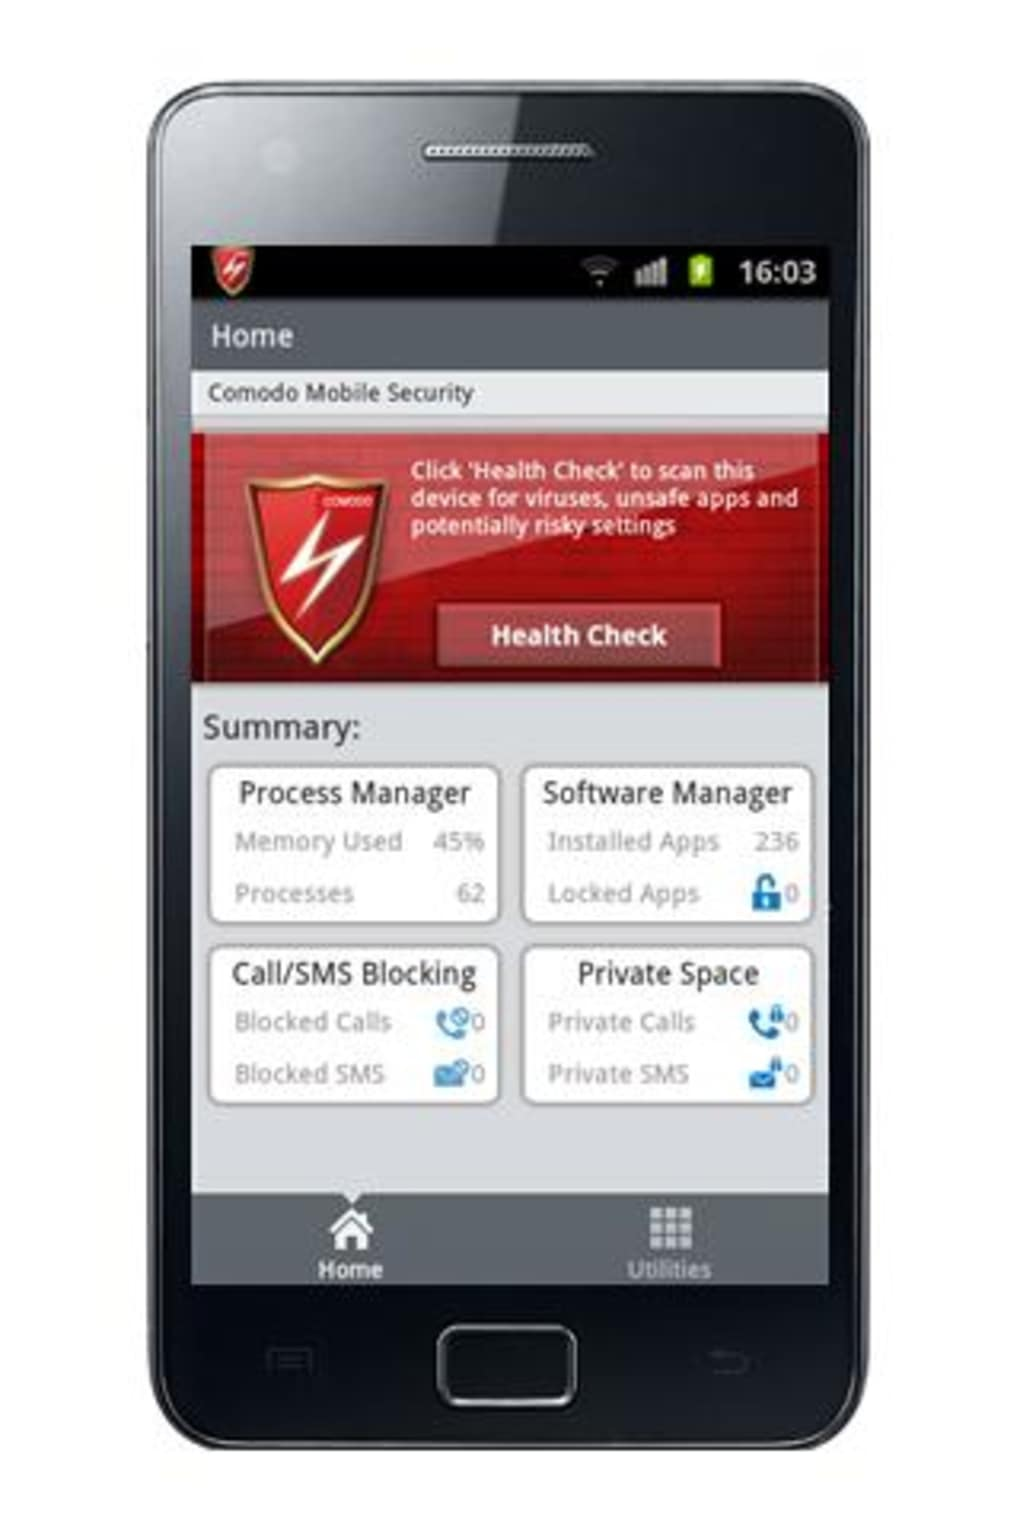 Comodo Mobile Security for Android - Download